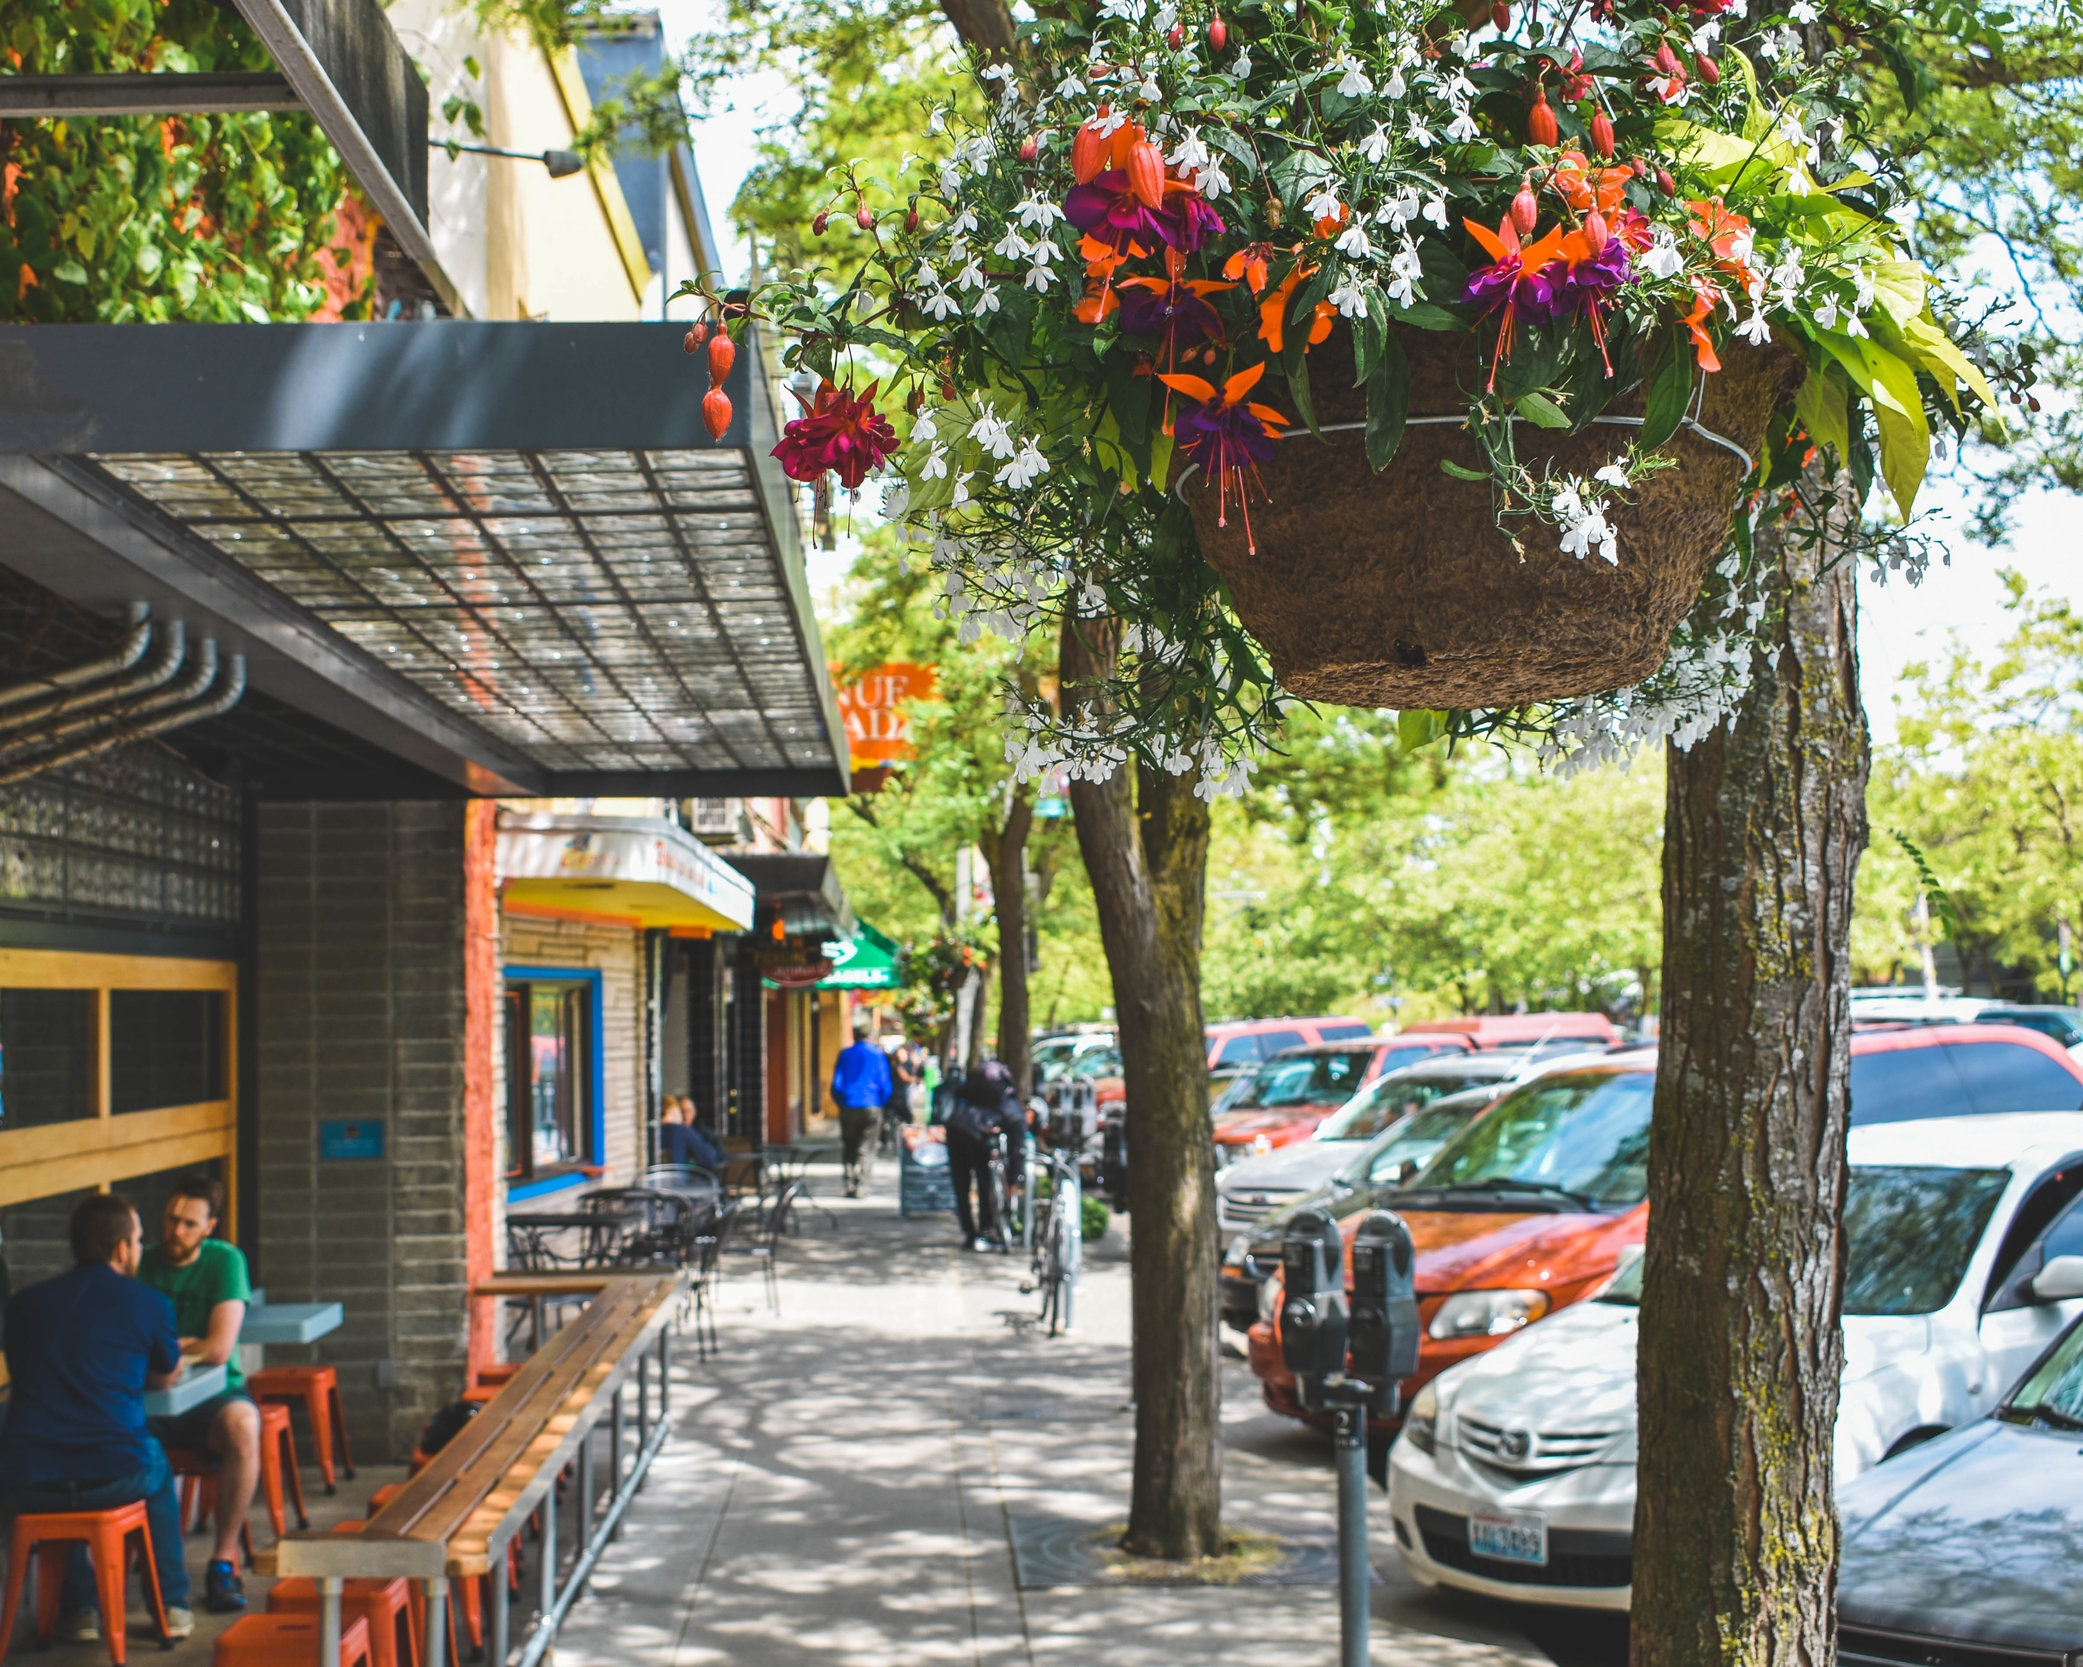 Hanging baskets and street-level planters are maintained by DBP landscaping programs.